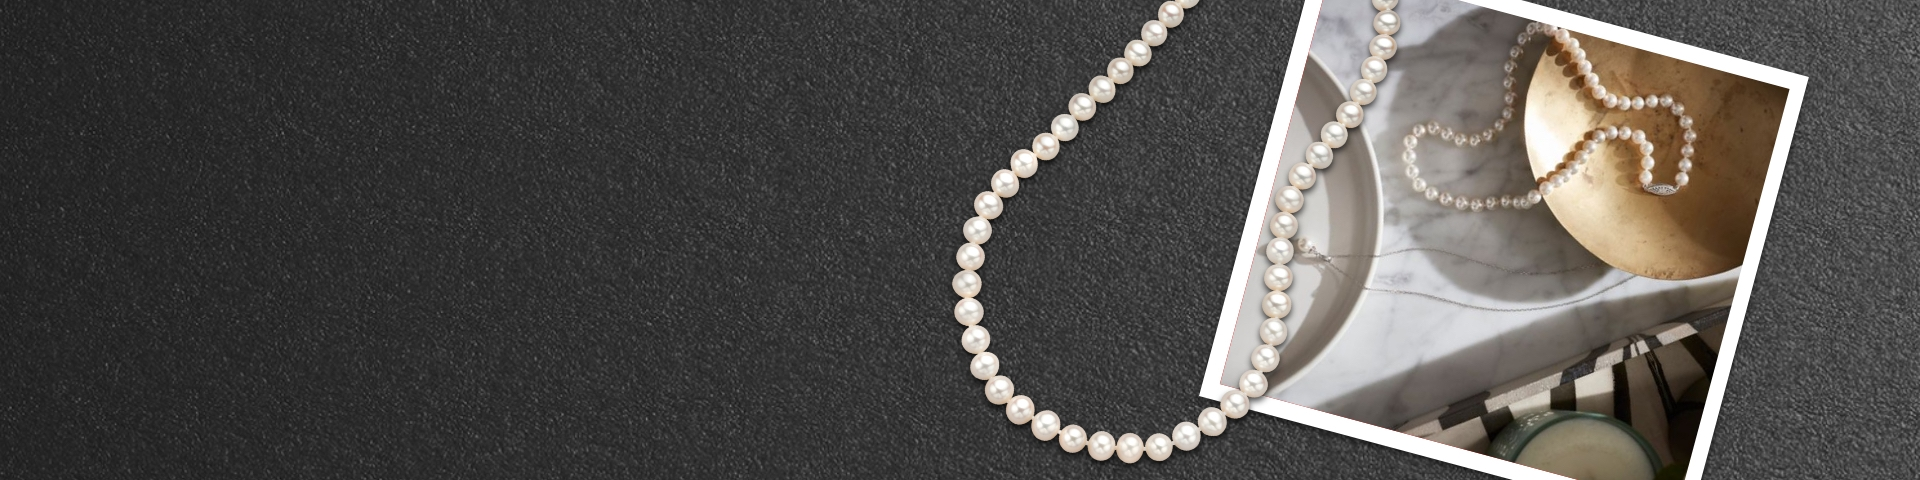 Pearl necklace on a countertop next to a bowl. Shop Brilliant Moments pearls.